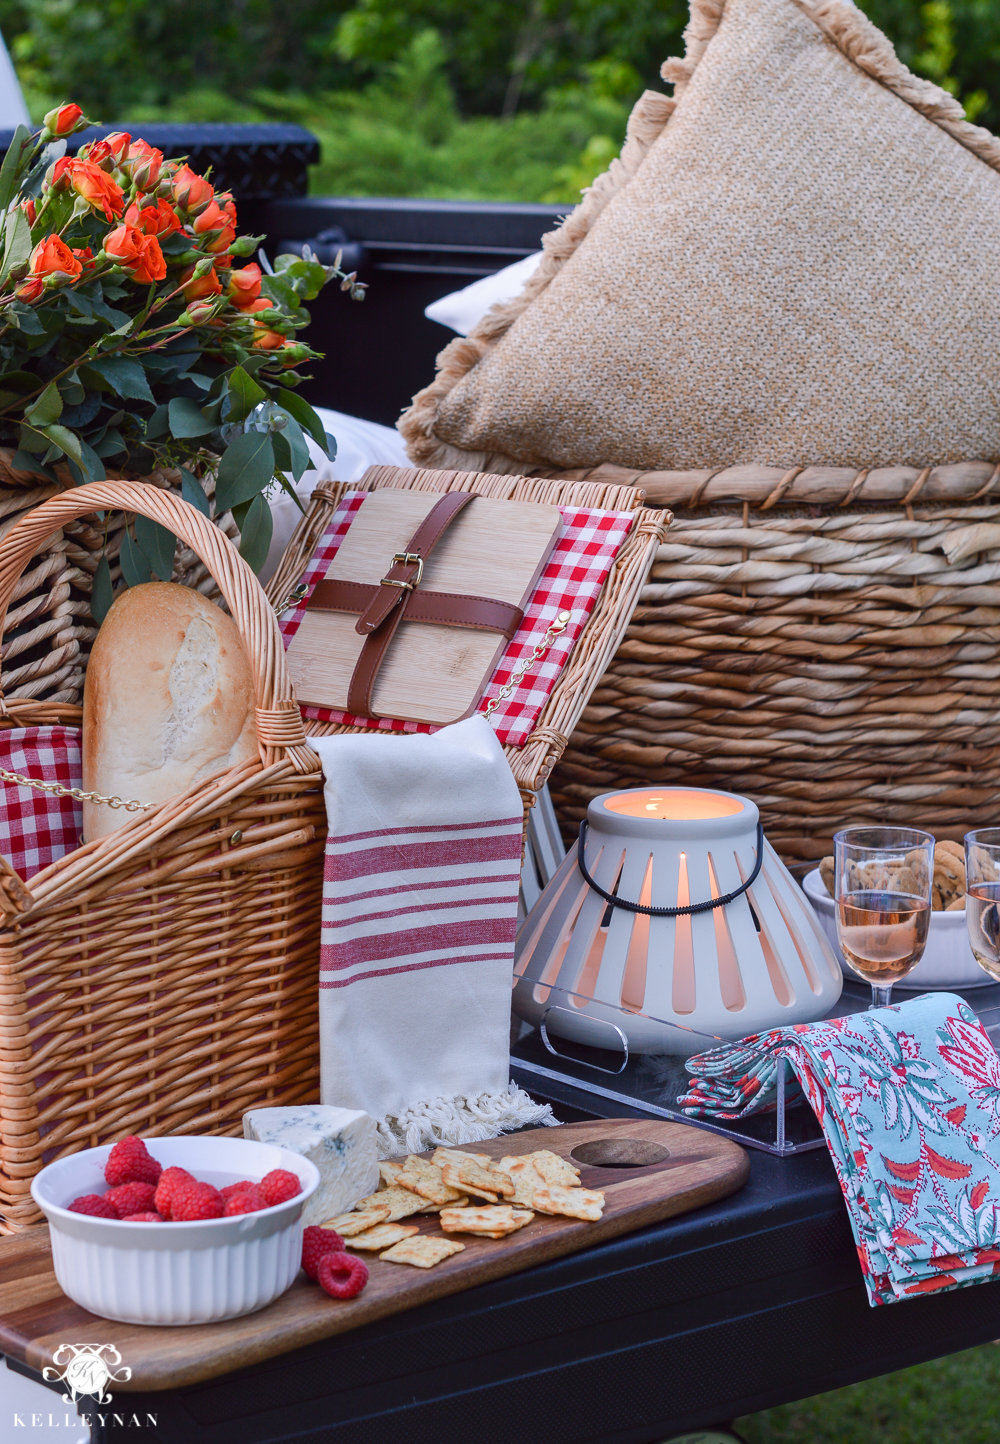 Picnic And Tailgate Ideas And Setup Fancy Tailgate Ideas